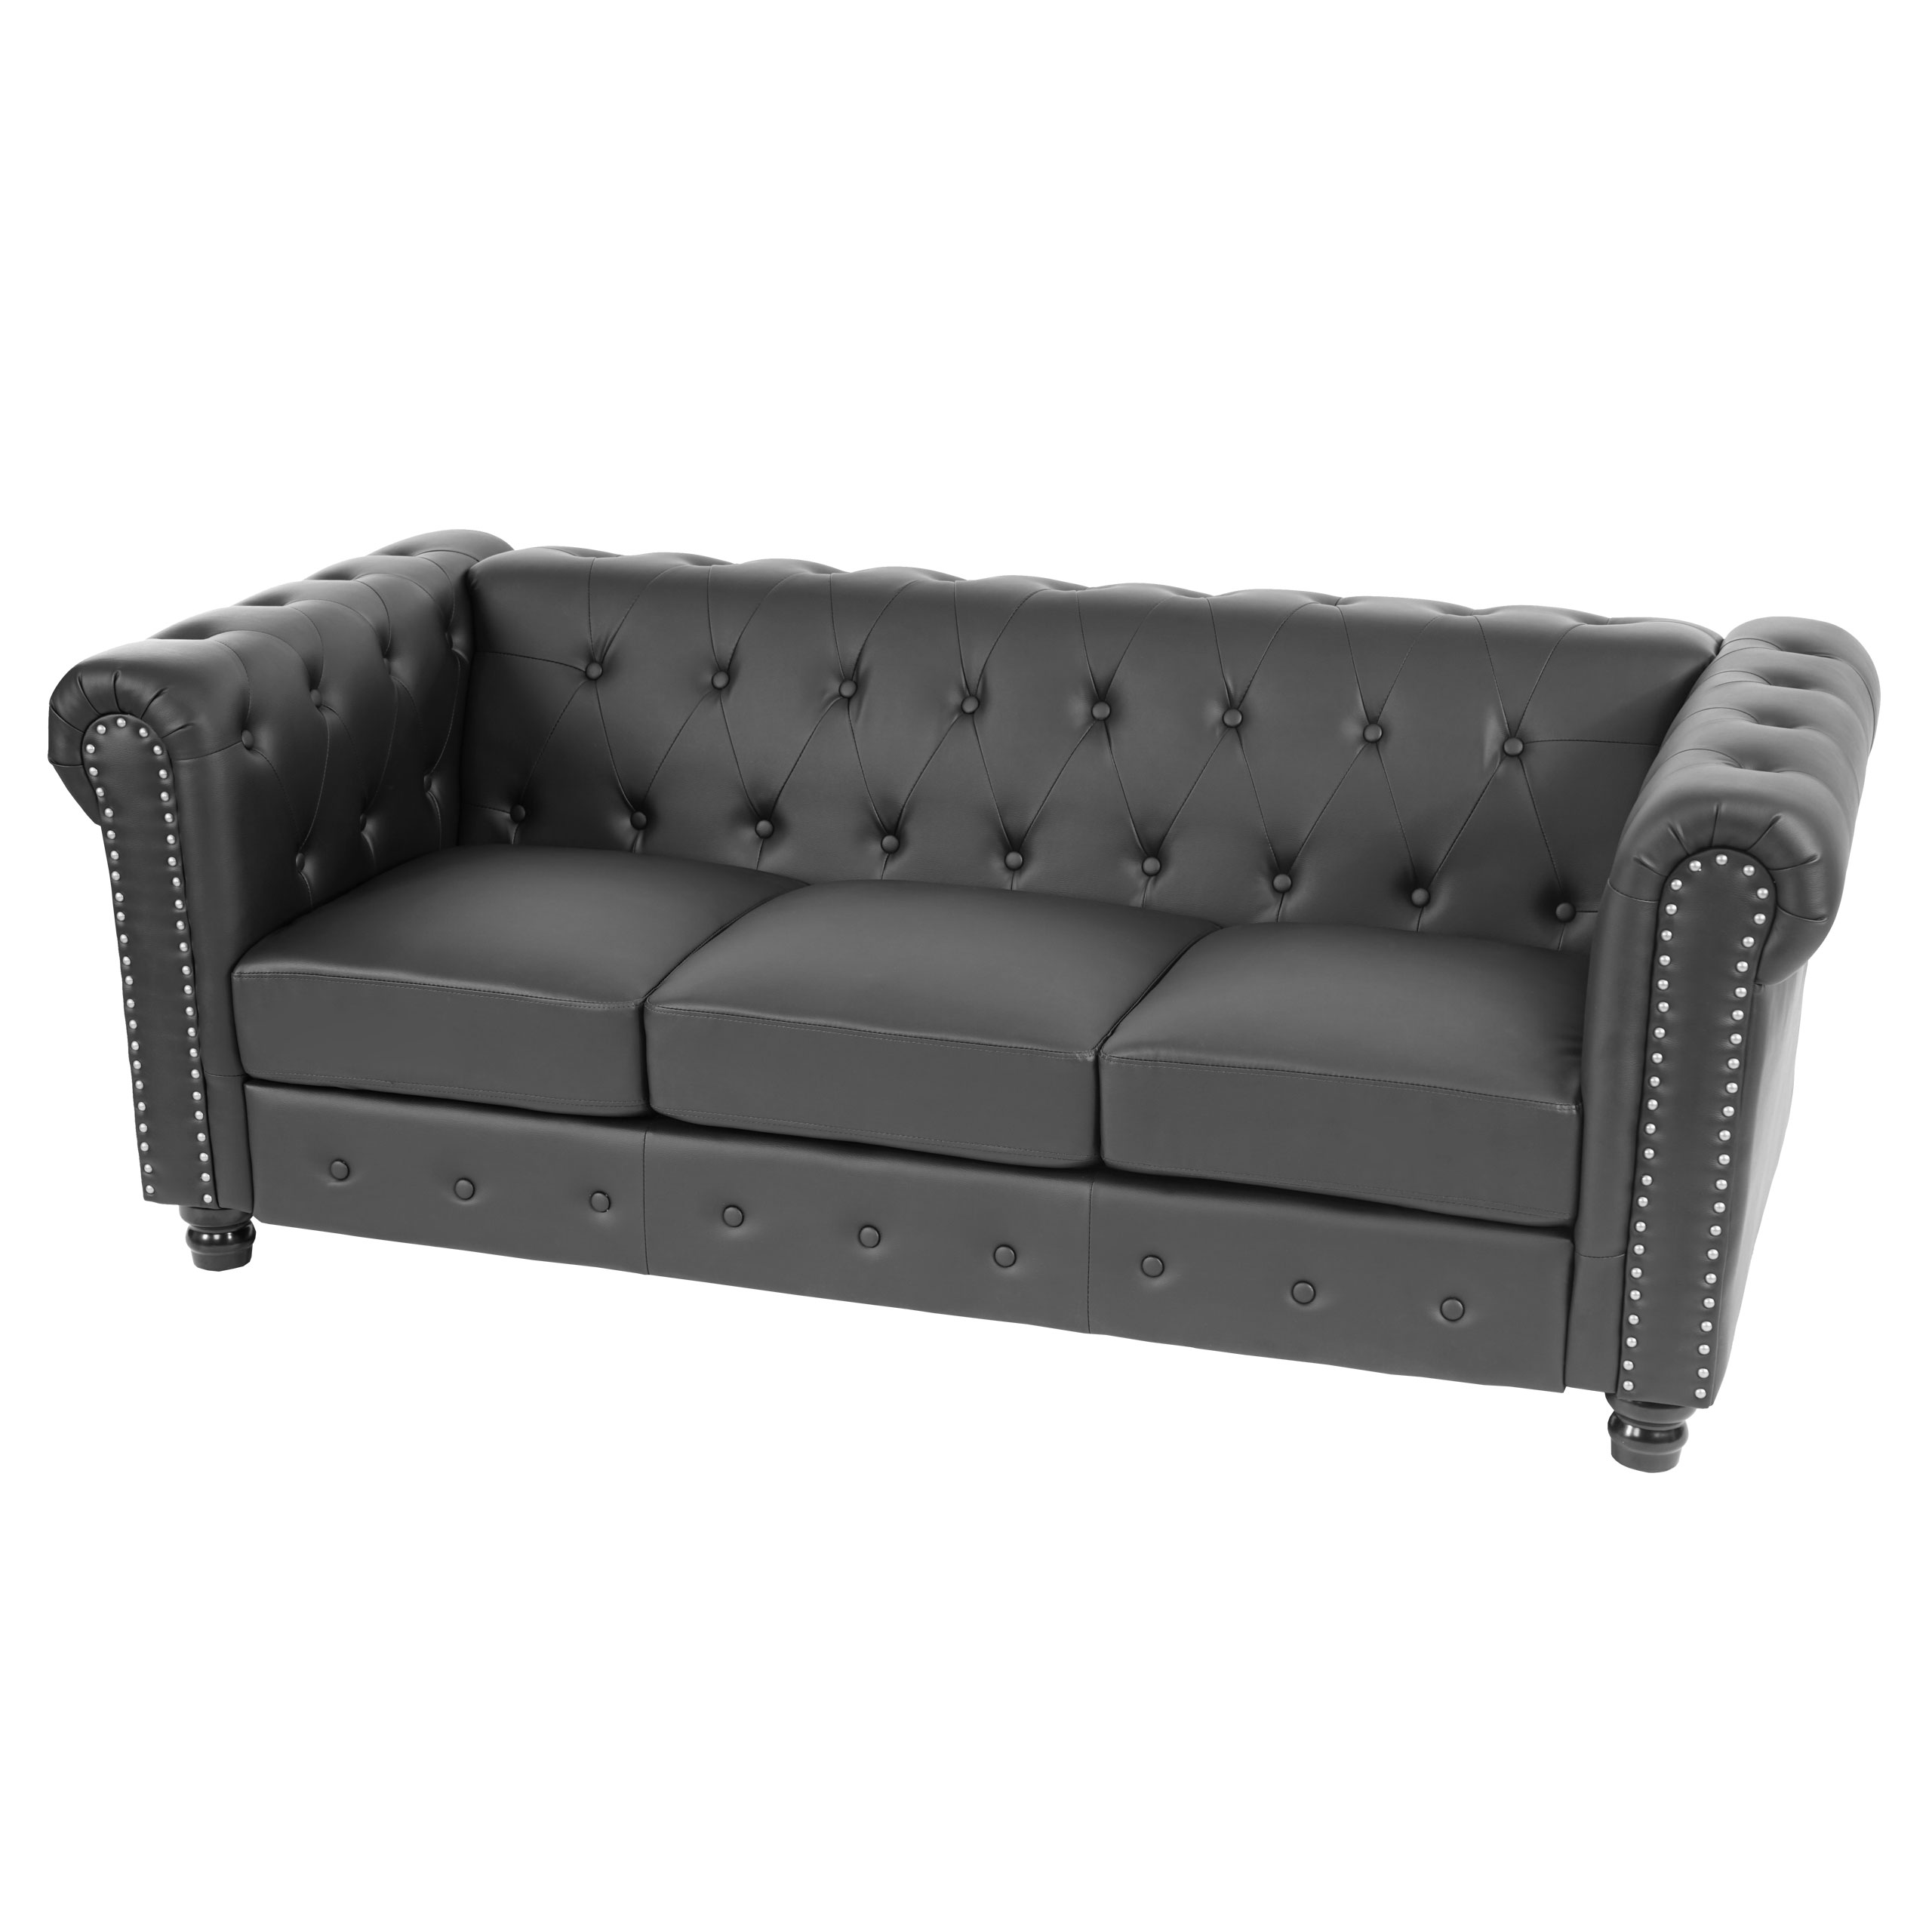 luxus 3er sofa loungesofa couch chesterfield kunstleder. Black Bedroom Furniture Sets. Home Design Ideas